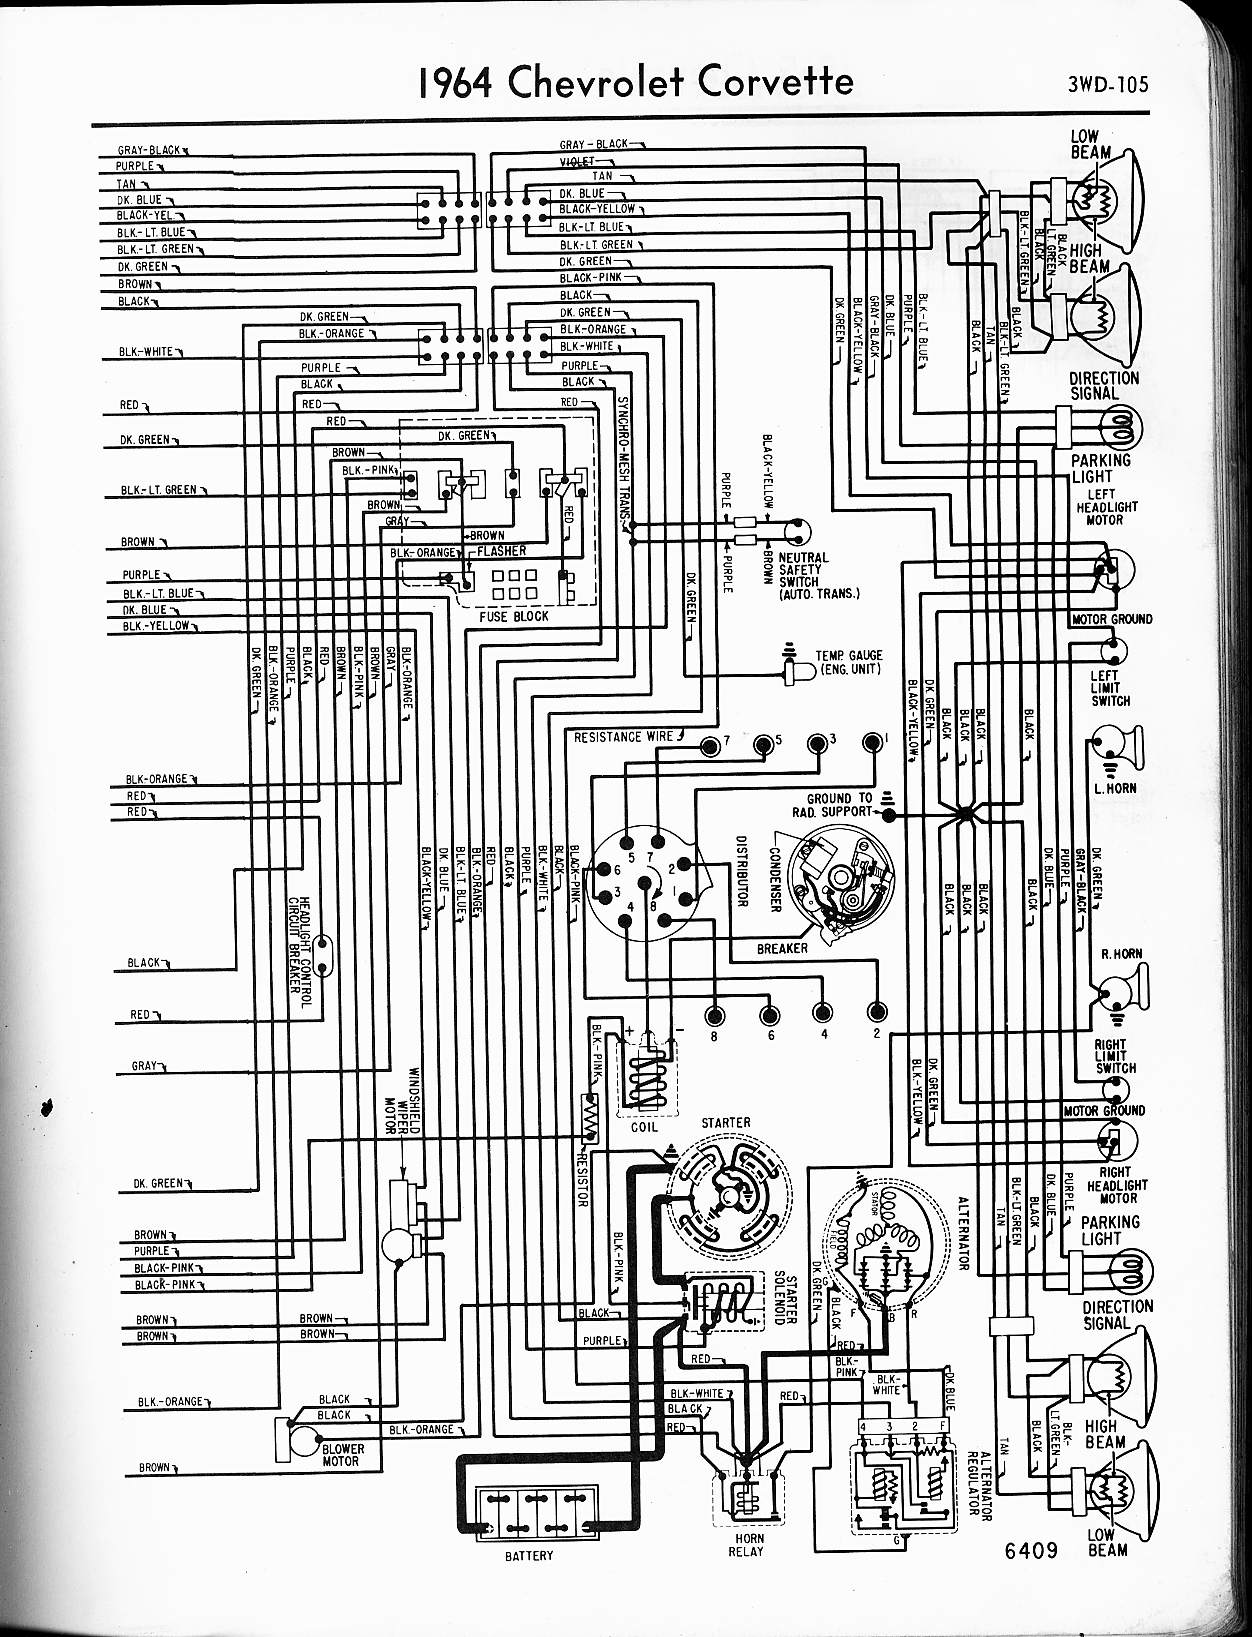 New 1964 Corvette Radio Wiring - Explore Schematic Wiring Diagram •